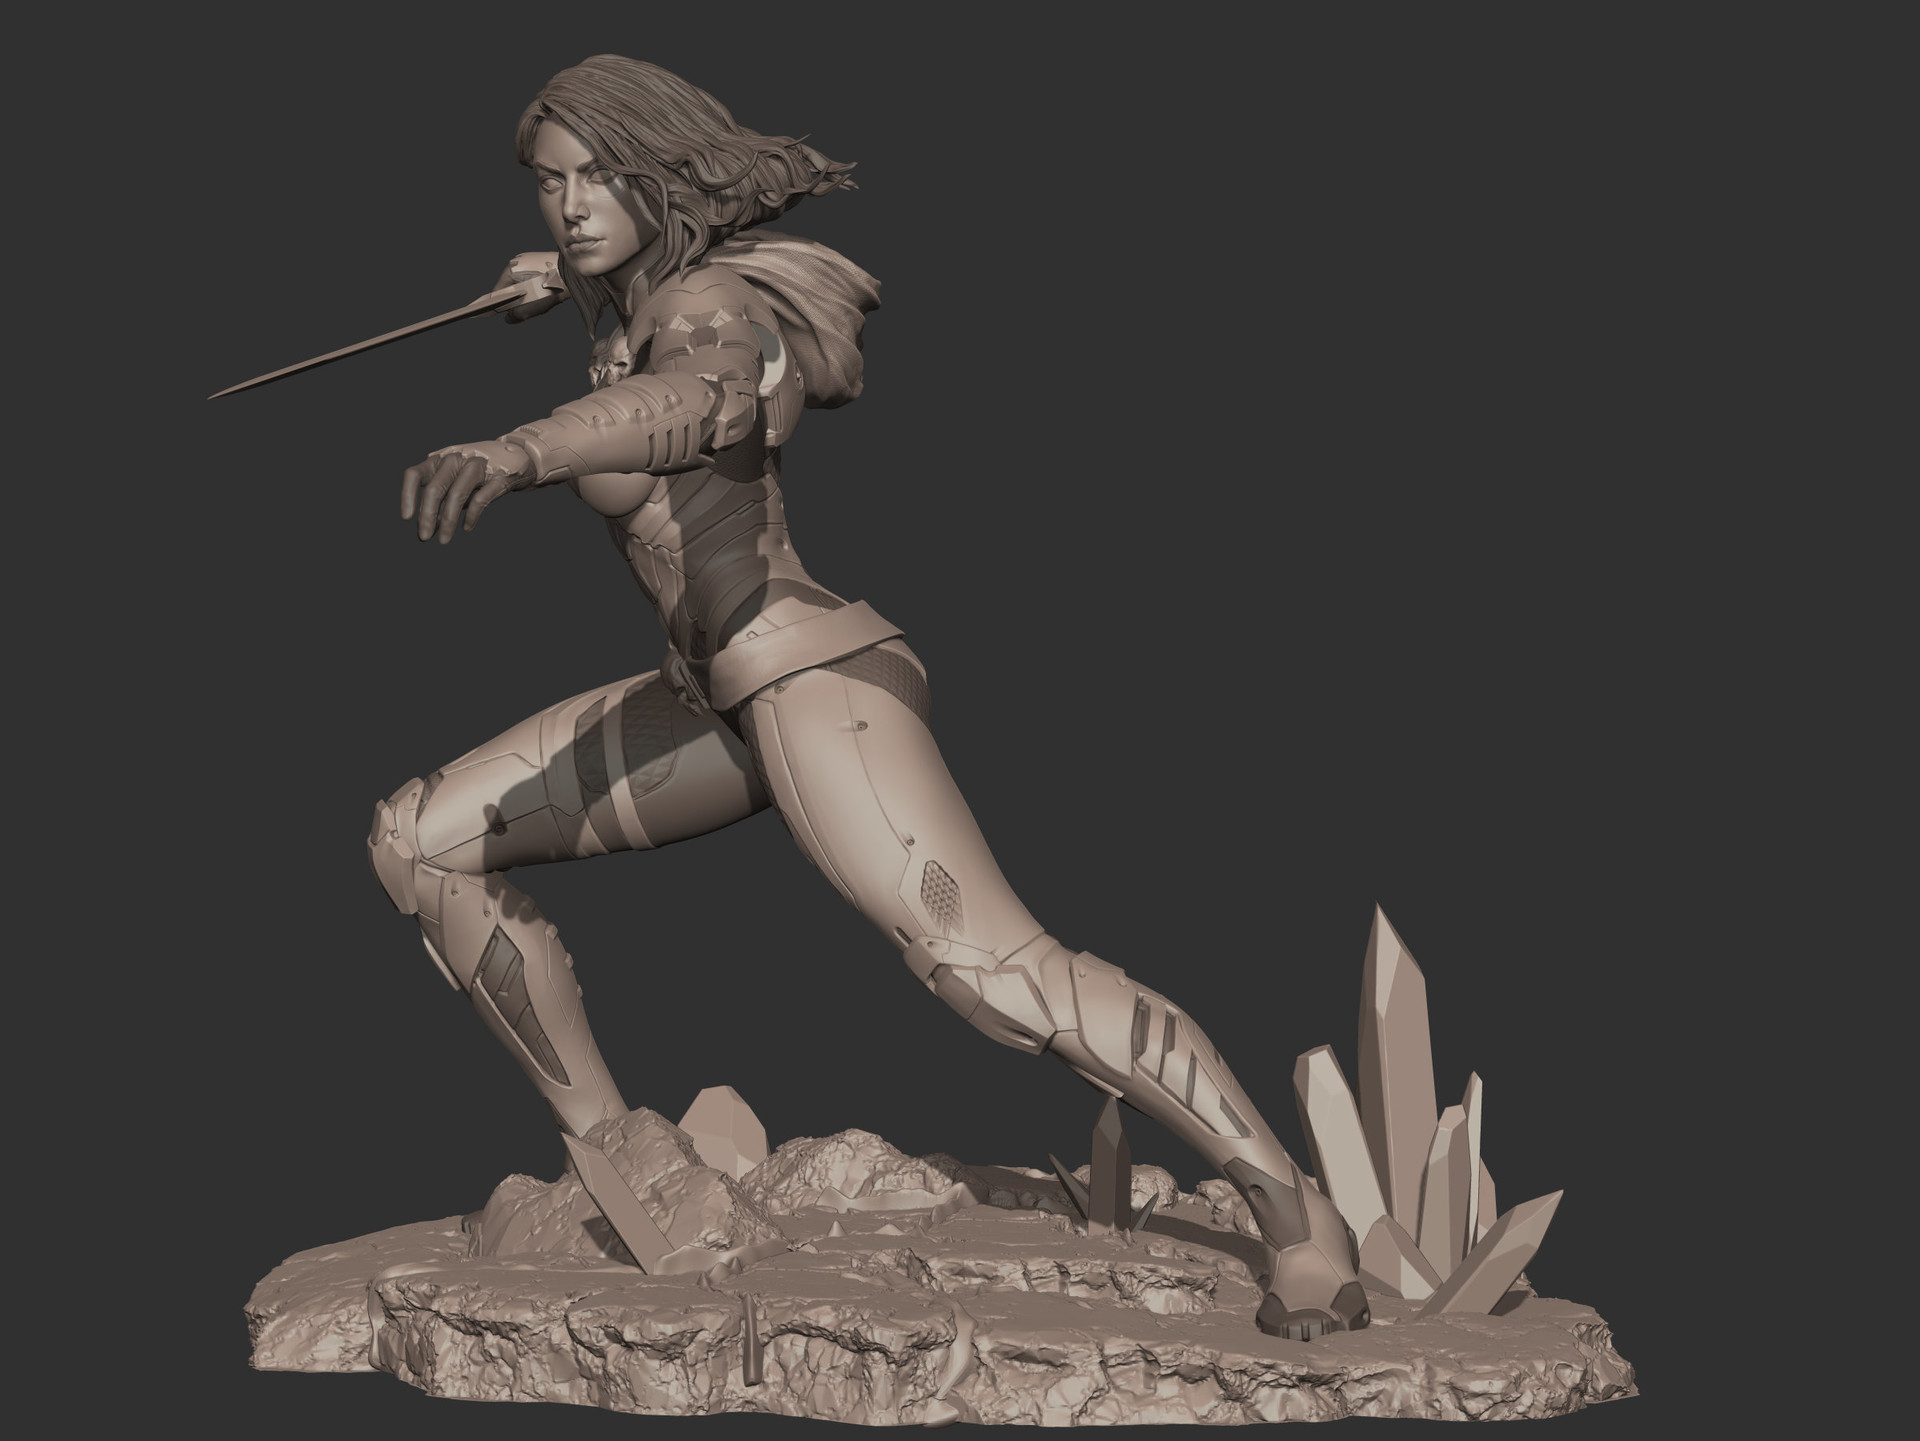 David giraud zbrush document6 3